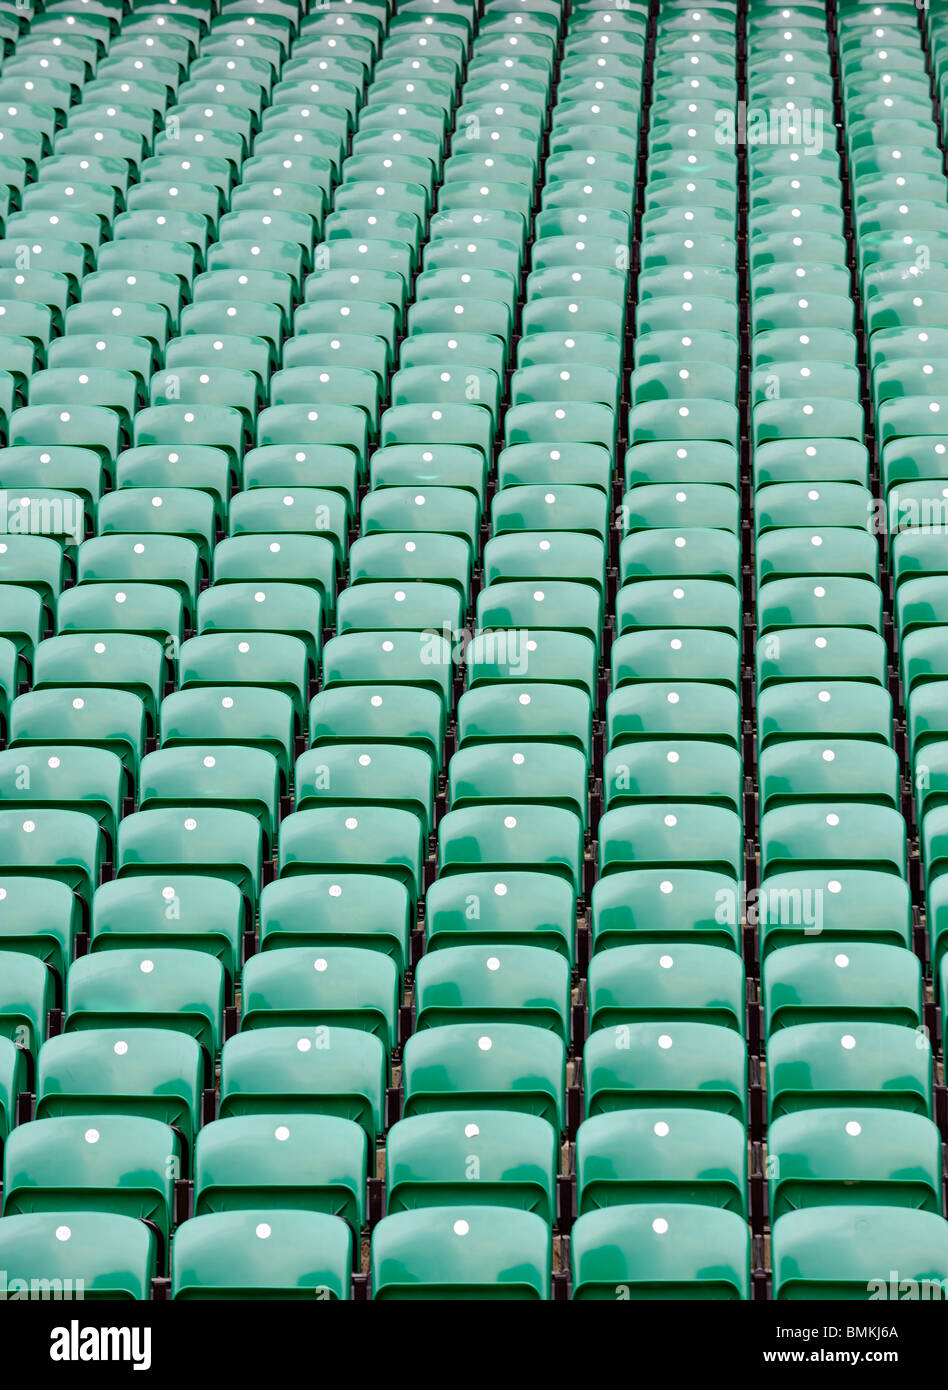 rows of green seats at Twickenham Stadium, the home of English Rugby - Stock Image